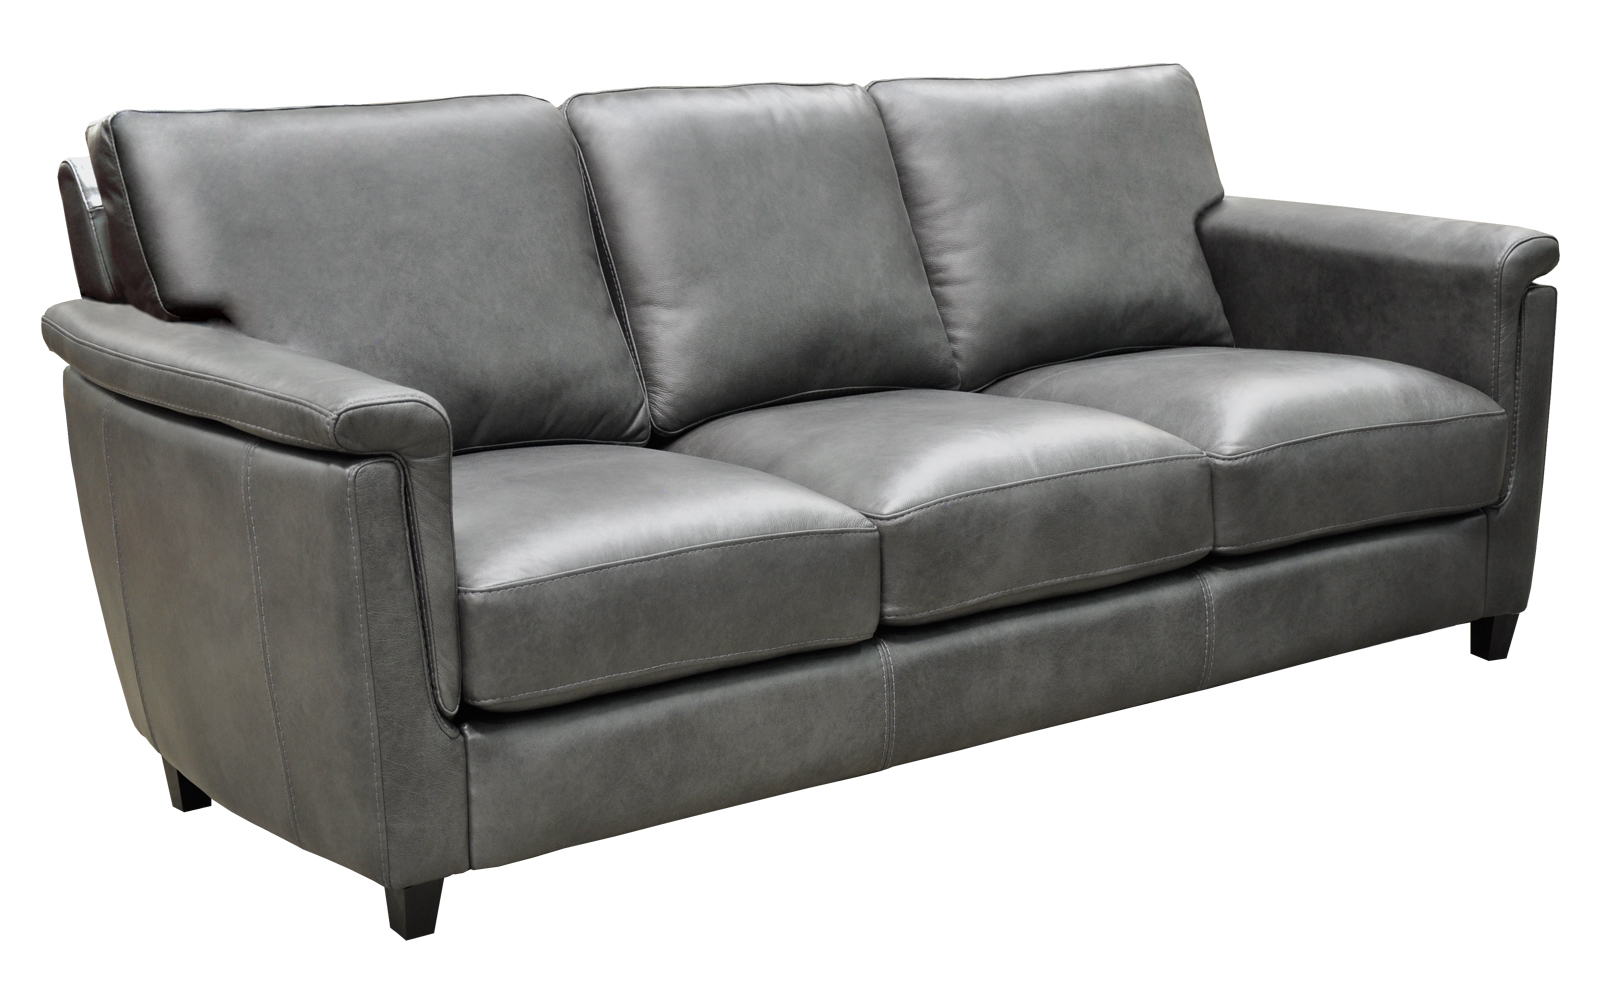 Stationary Solutions 209 S M L Sofa Arizona Leather